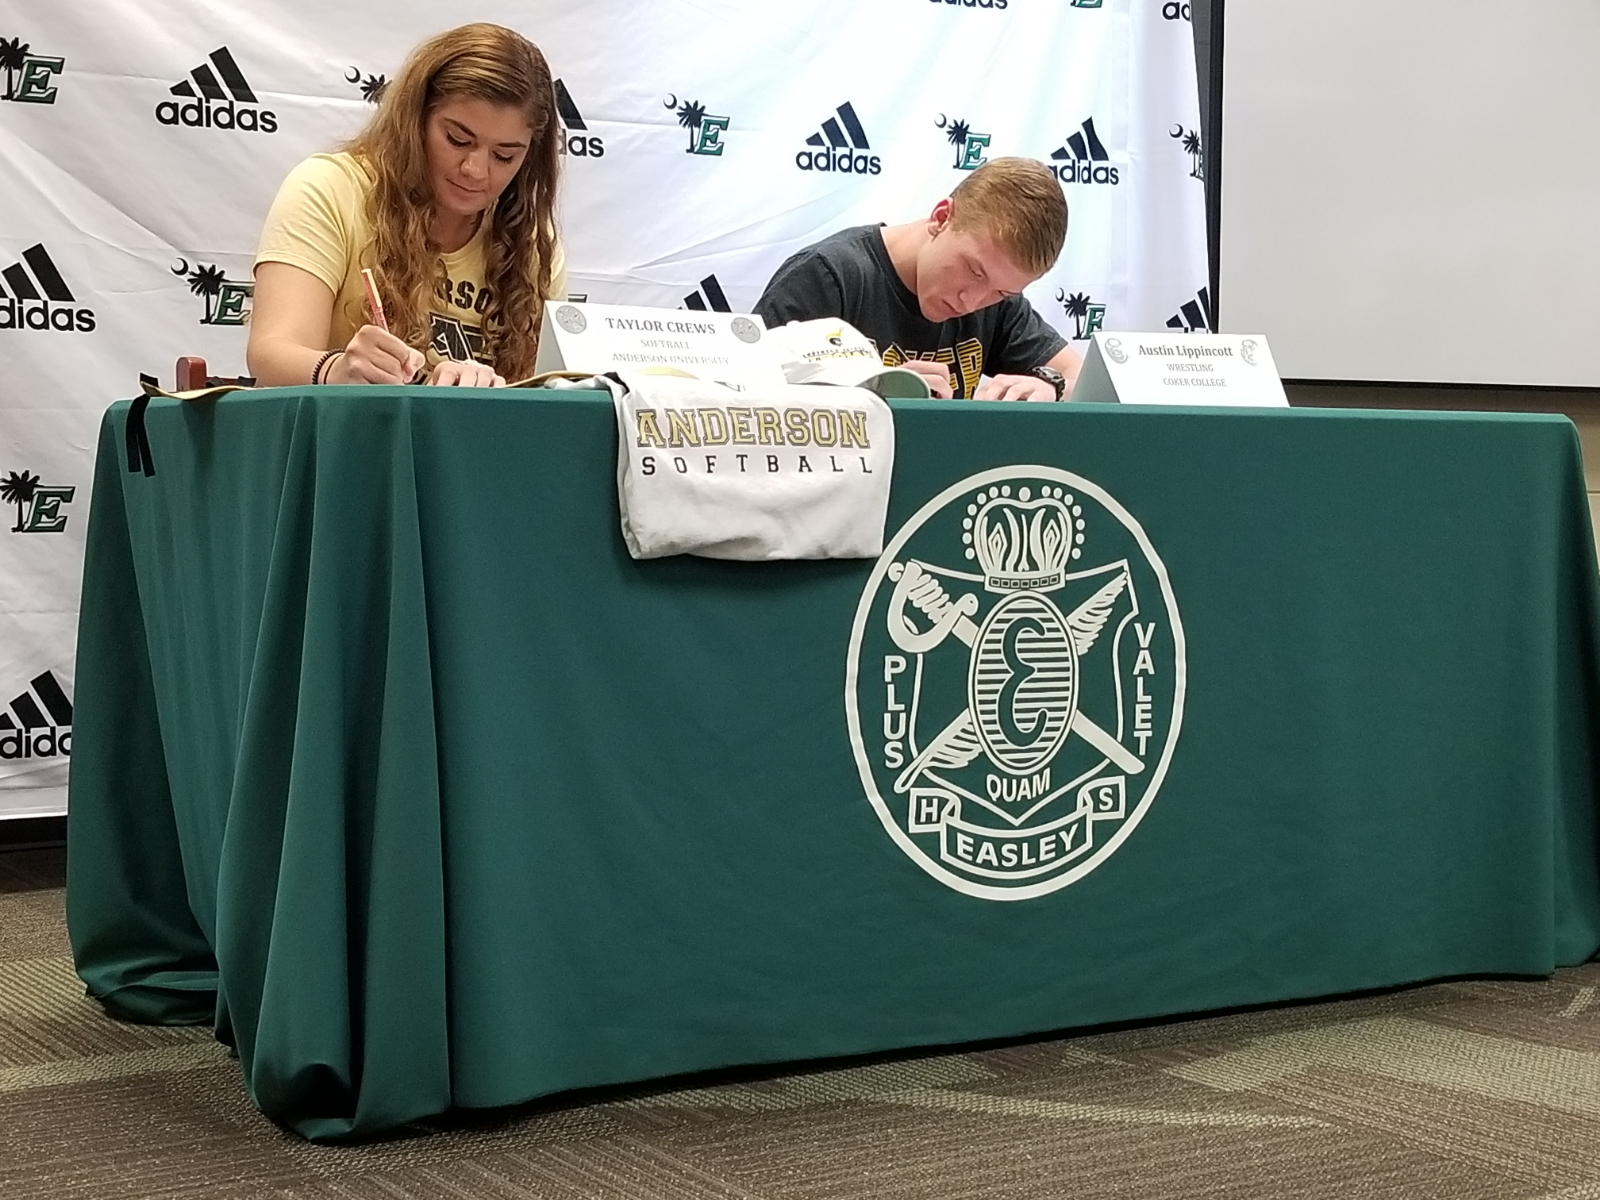 Easley Student-Athletes Commit to College in Fall Signing Ceremony